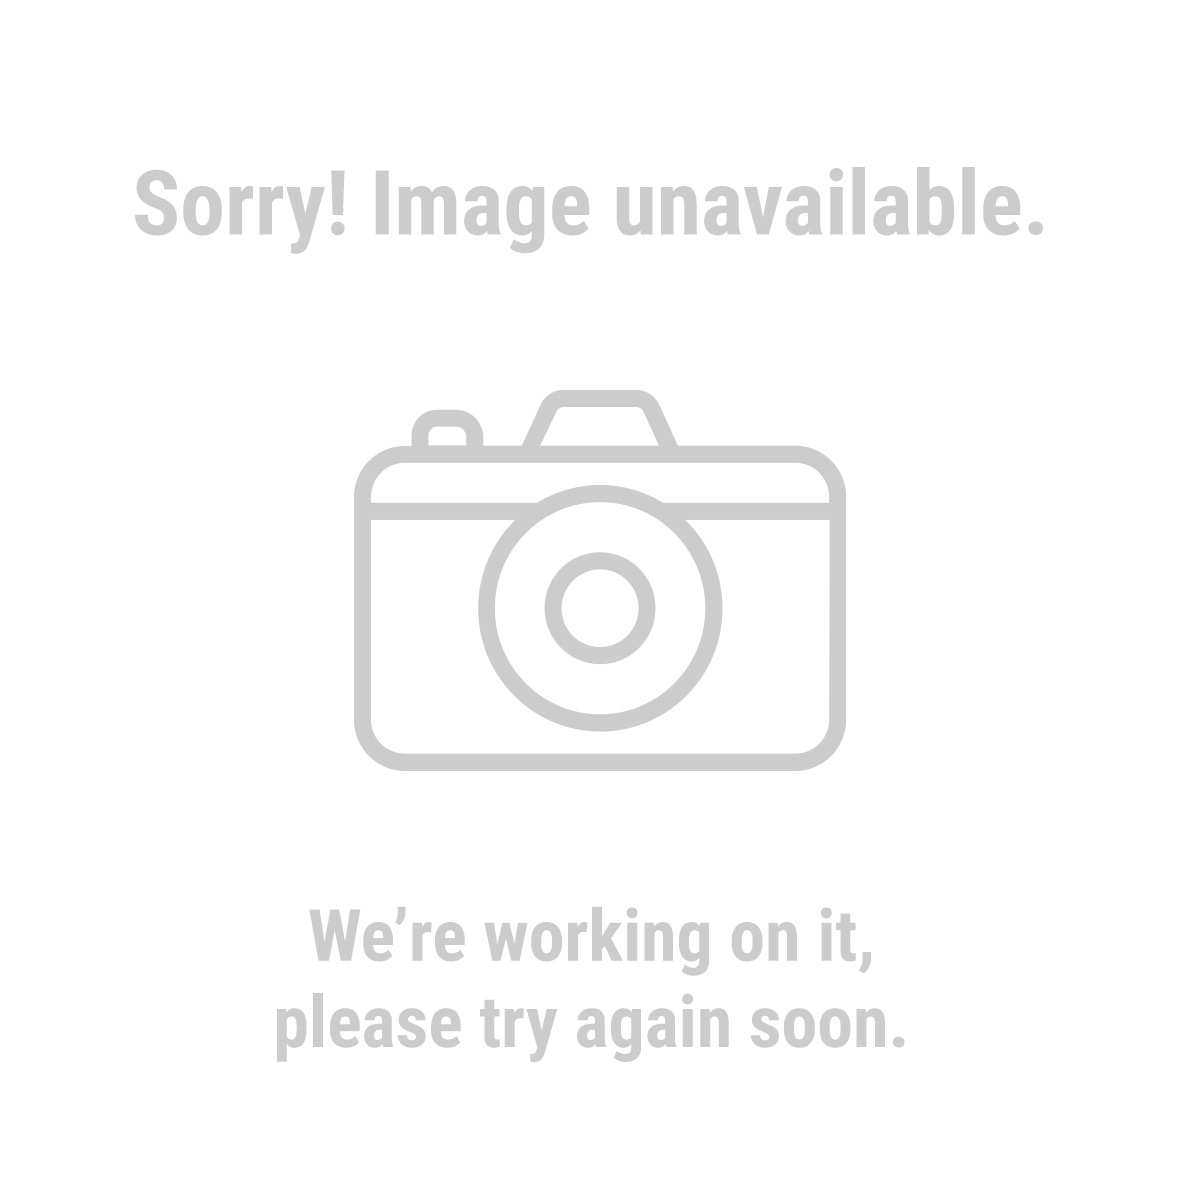 HFT 69123 9 ft. 4 in. x 11 ft. 4 in. Blue All Purpose/Weather Resistant Tarp